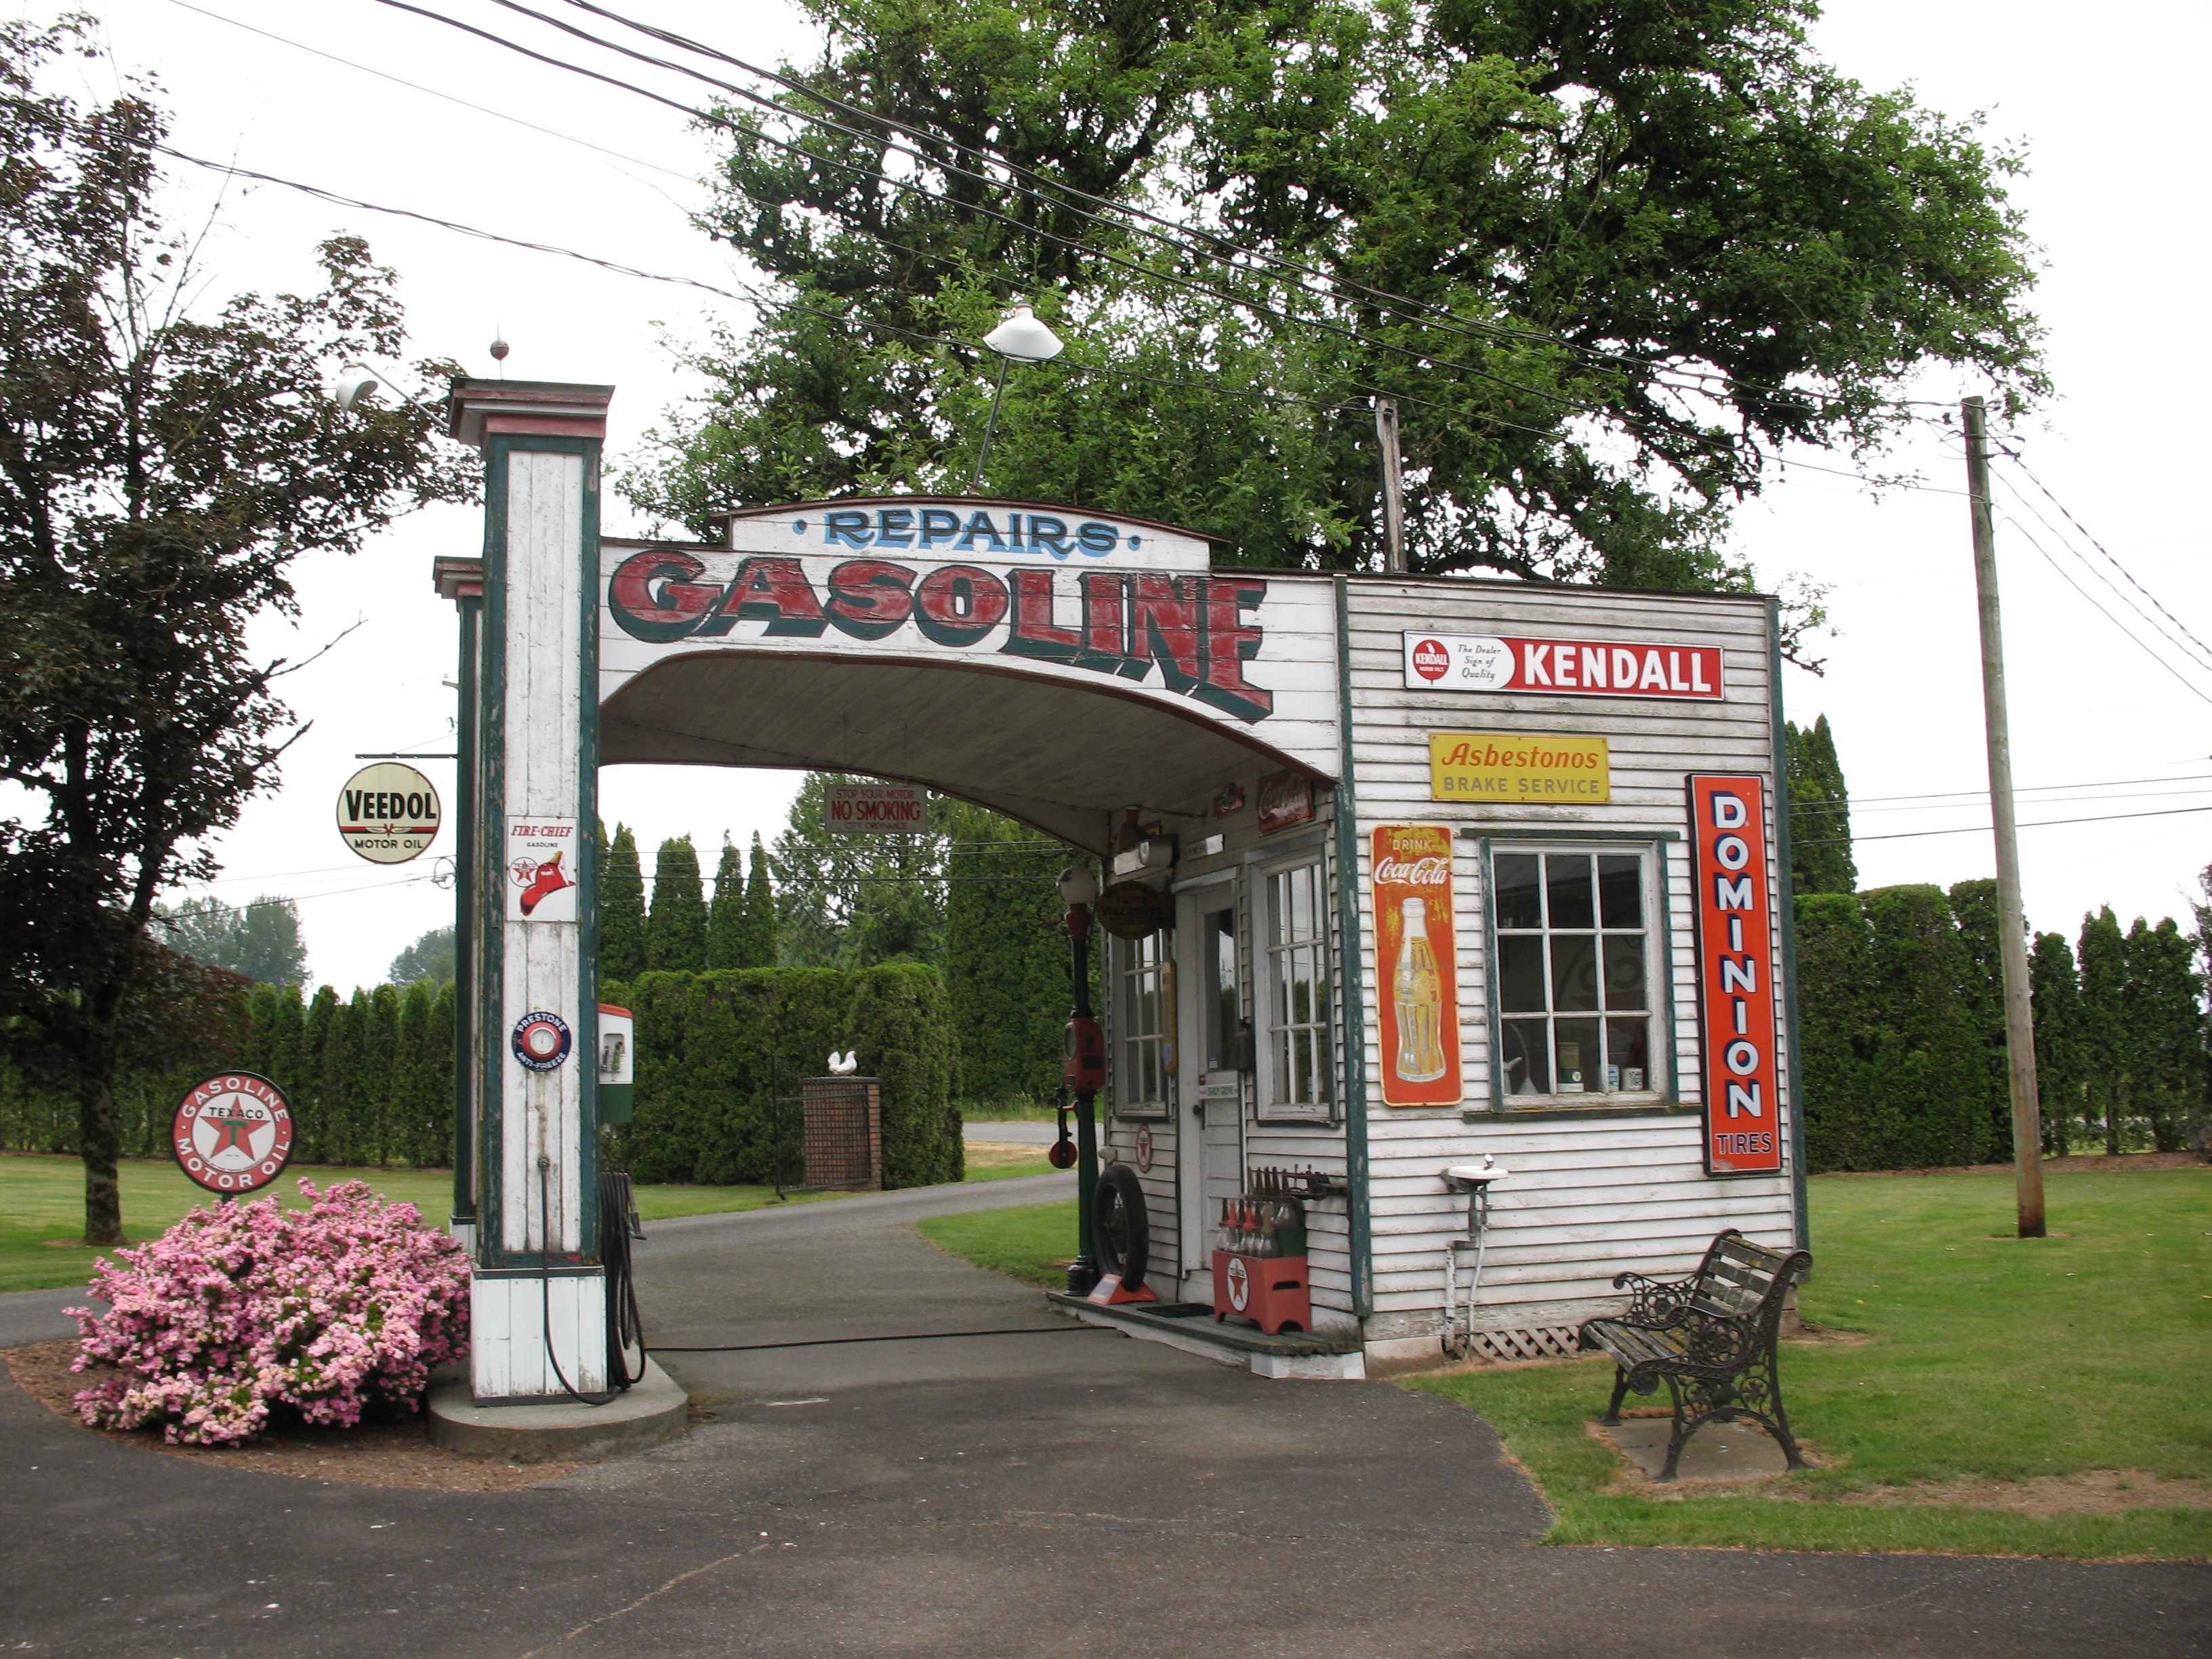 Shady Grove Texaco Gas Station